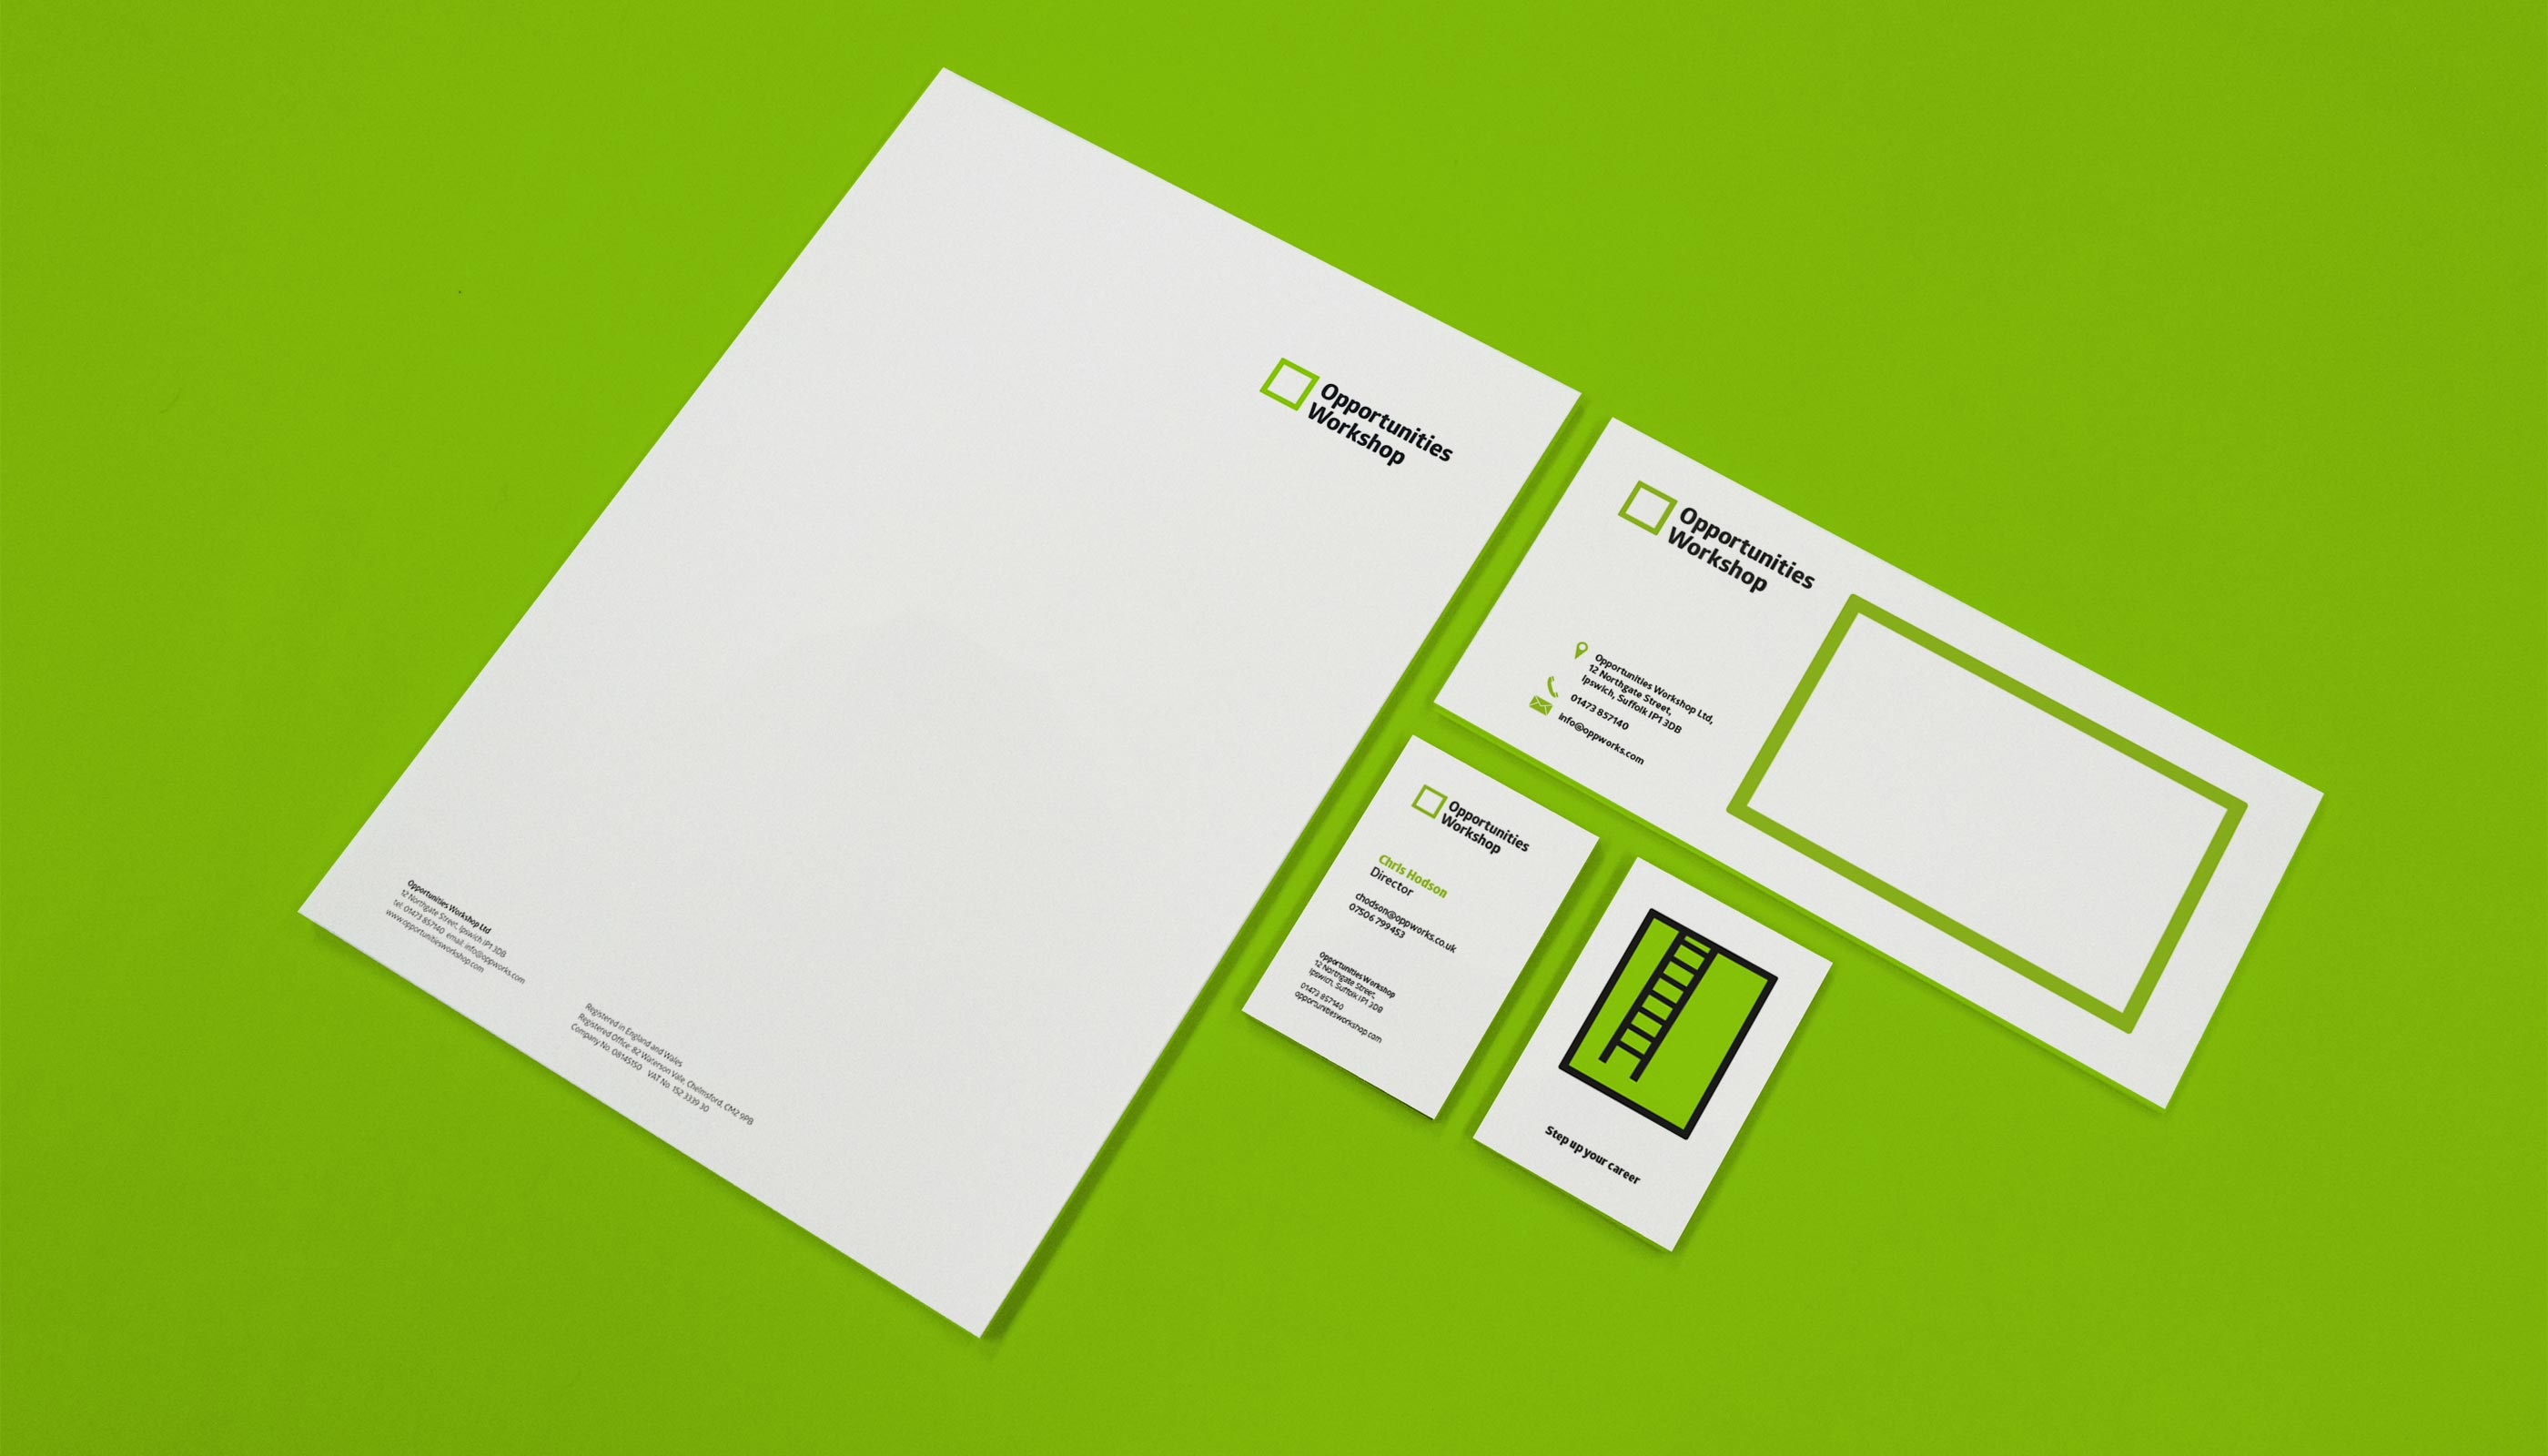 Stationery design and print for Opportunities Workshop in Ipswich, Suffolk.